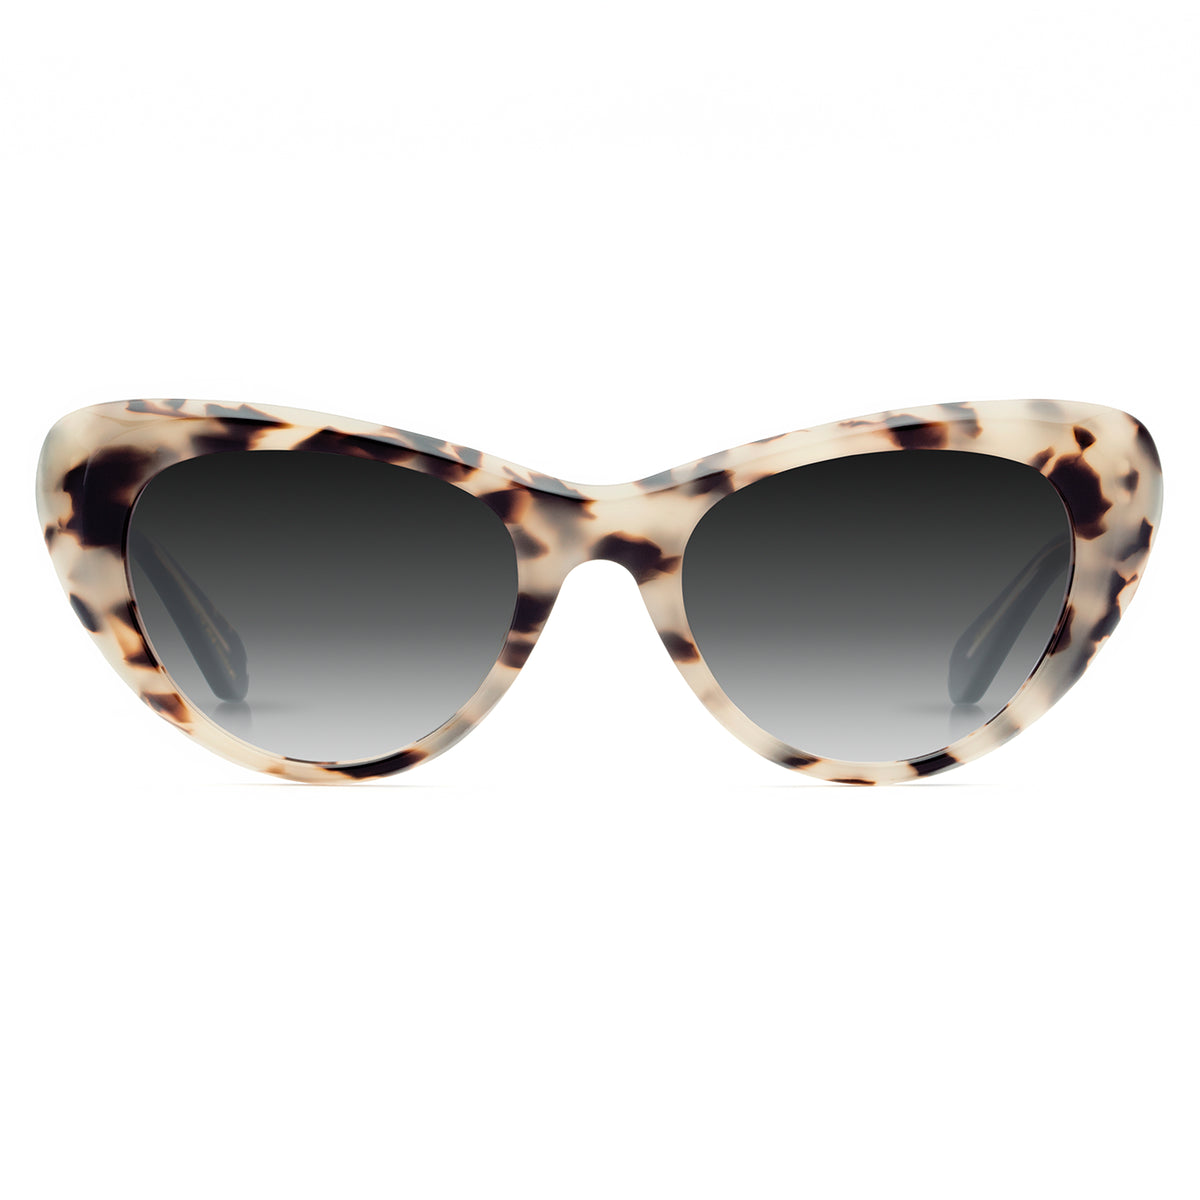 IRMA | Oyster + Black and Crystal | Acetate futuristic cat-eye Sunglasses.